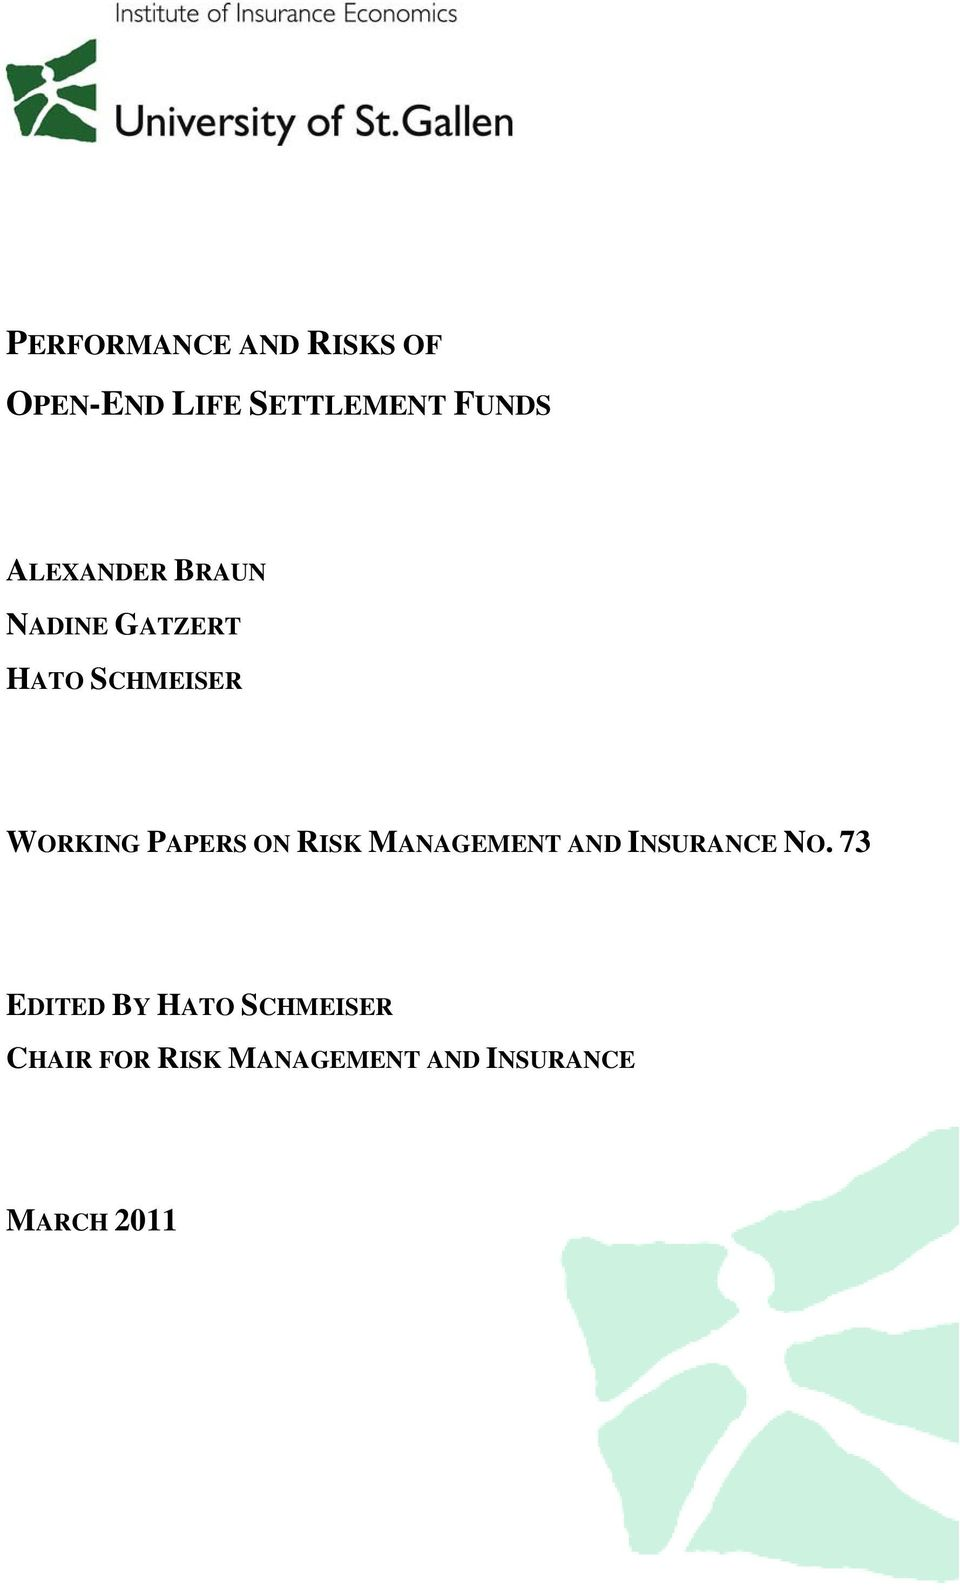 PAPERS ON RISK MANAGEMENT AND INSURANCE NO.